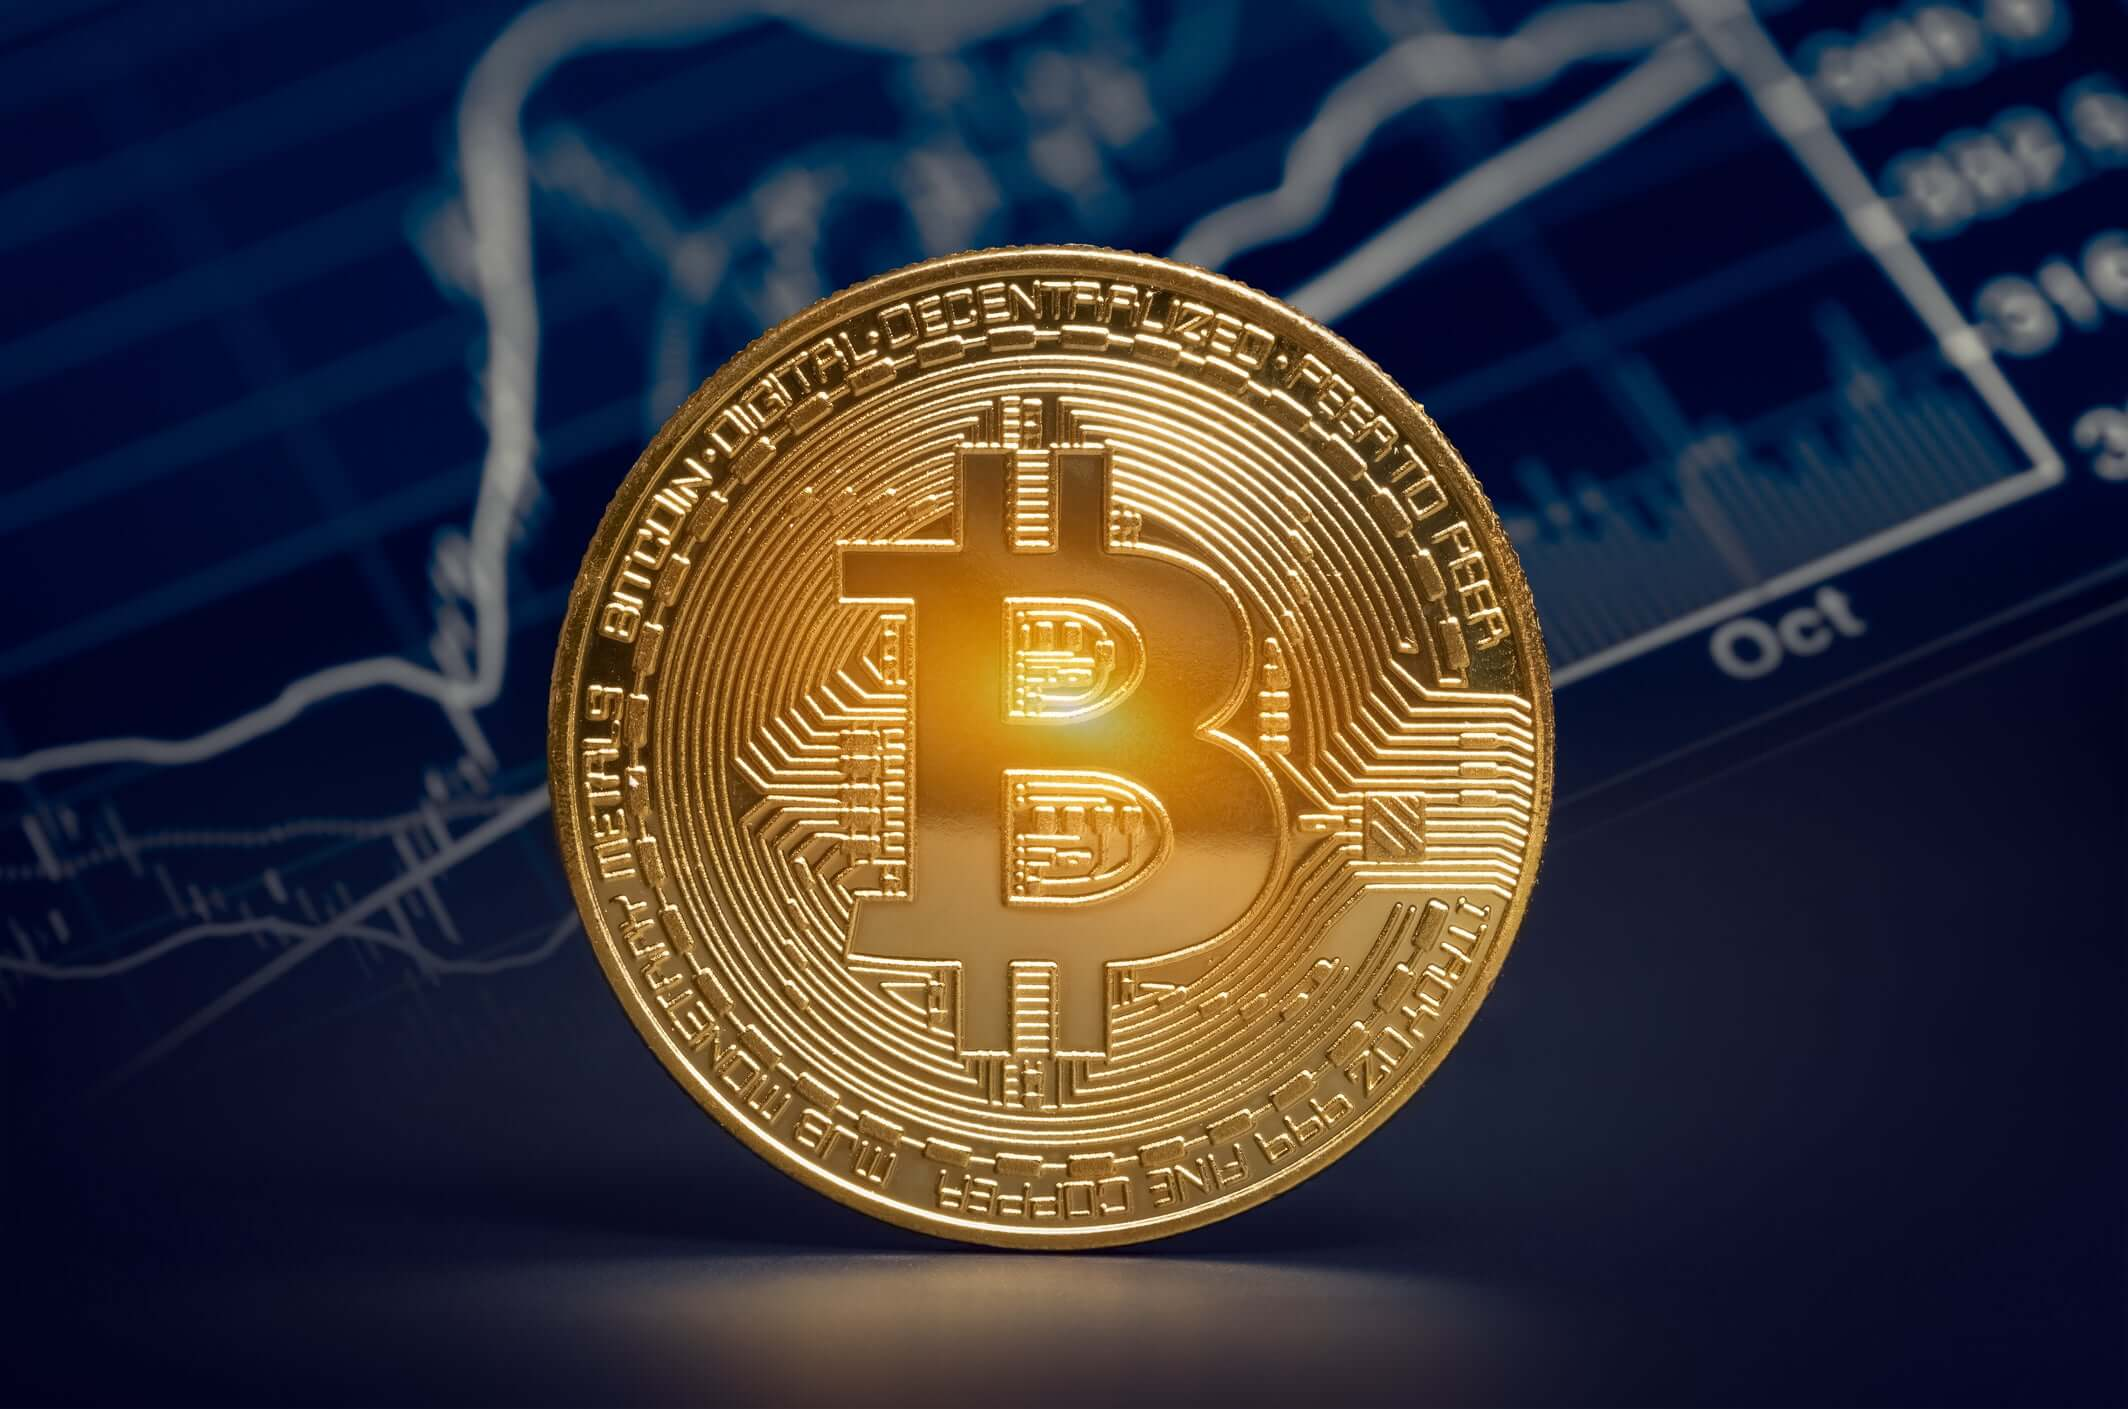 North American Bitcoin ETF's First Trading Day Captures $165M in Volume